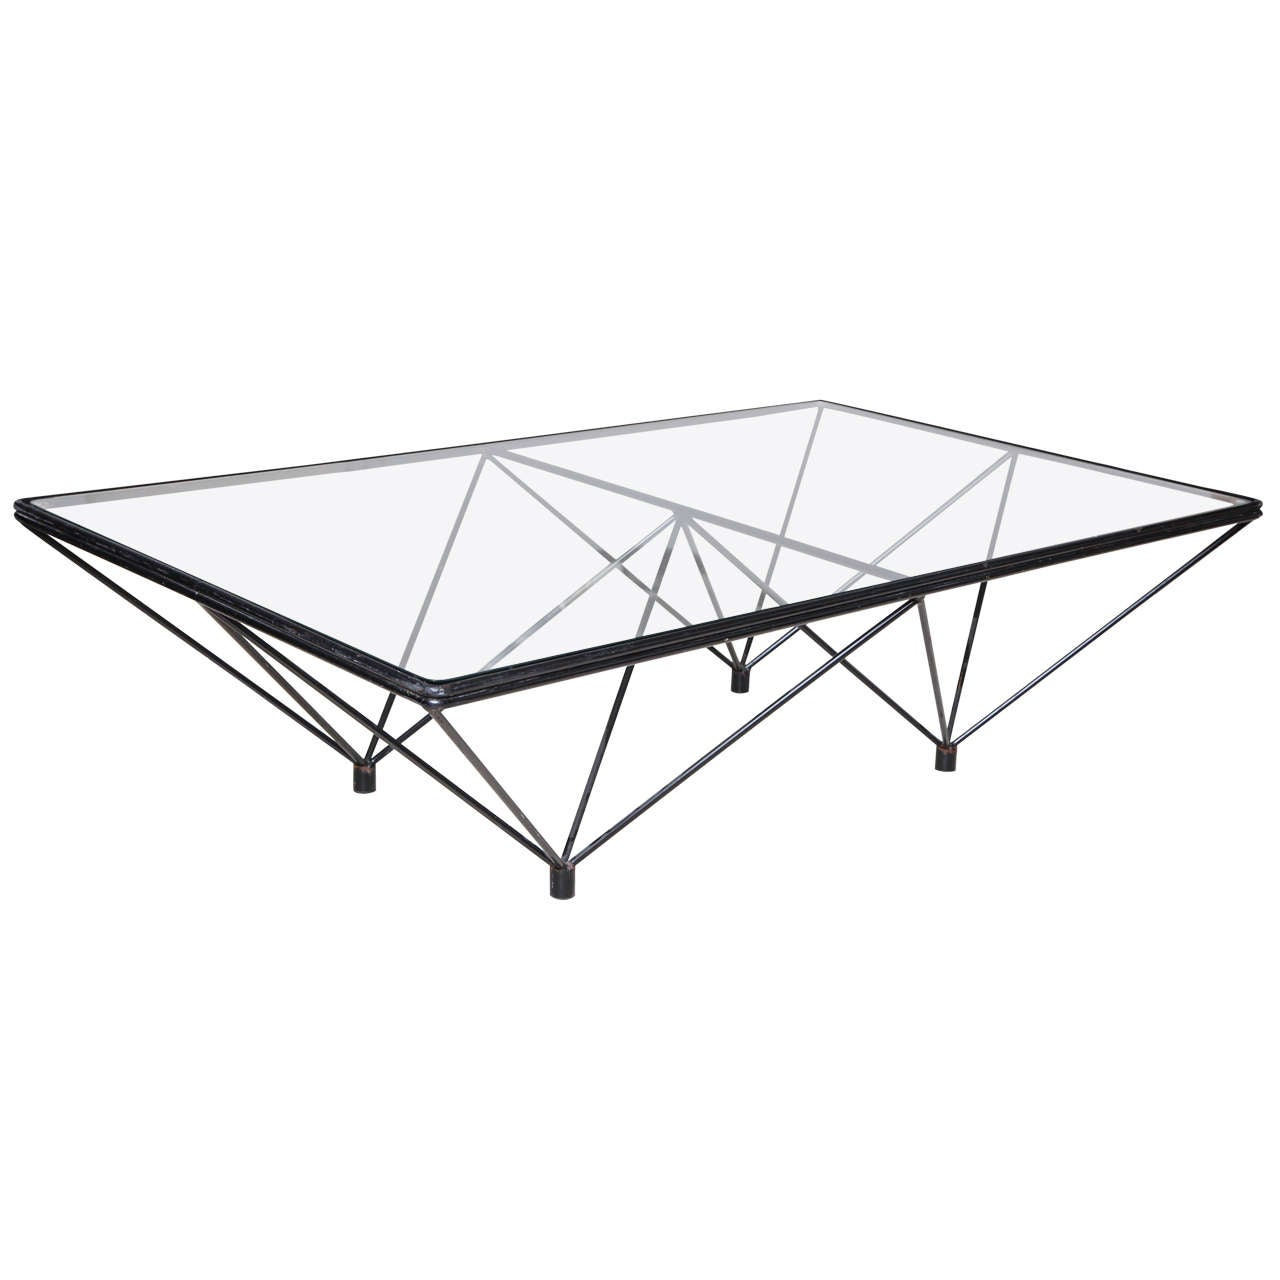 20th Century Black Steel and Glass Coffee Table